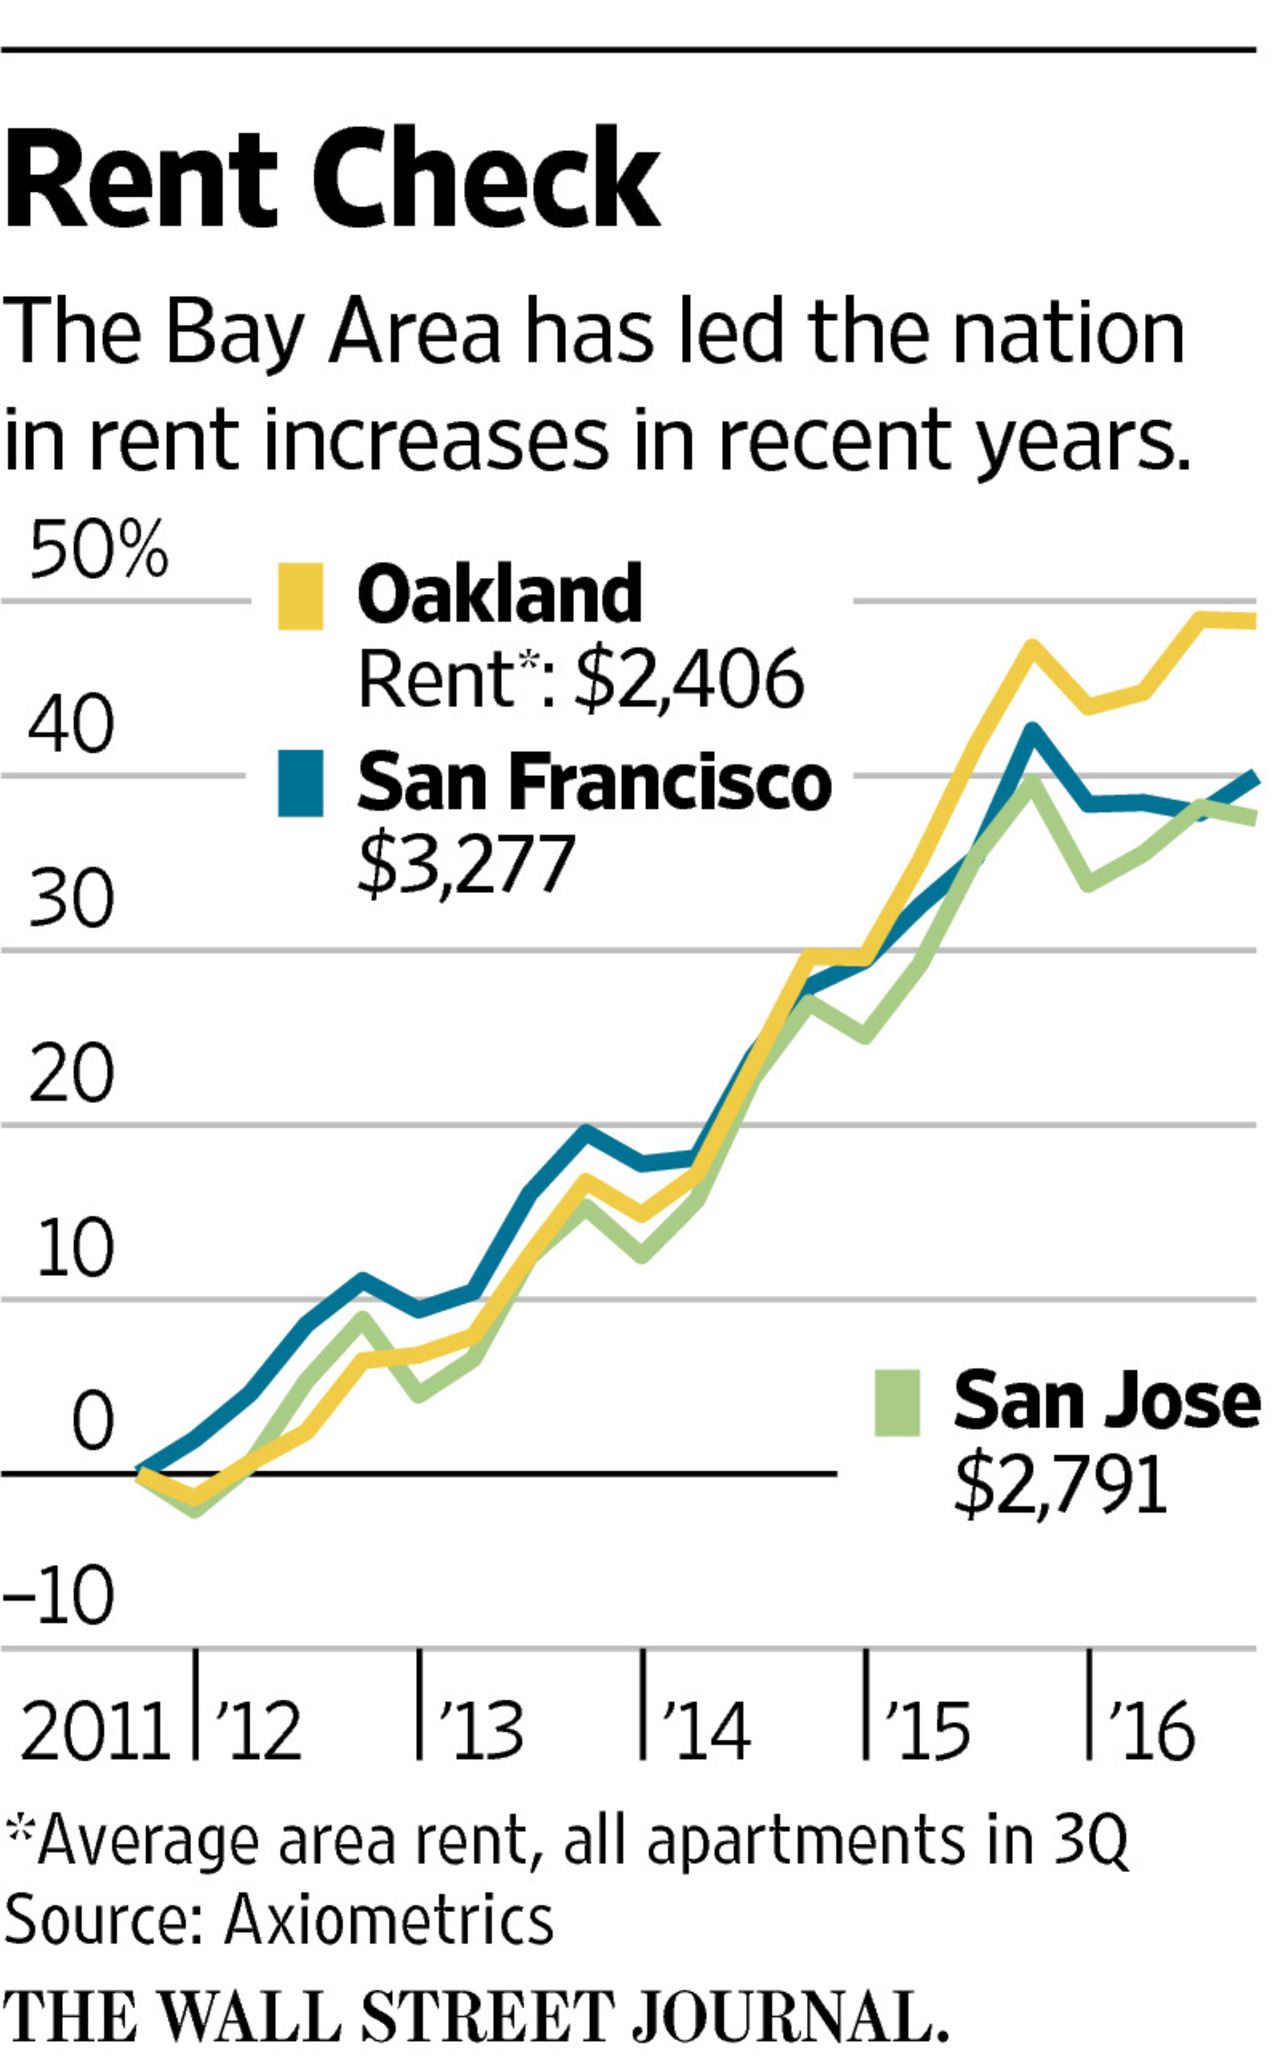 16026 MI CS293 RENT 16U 20161018174520 A New Real Estate War in Silicon Valley   WSJ